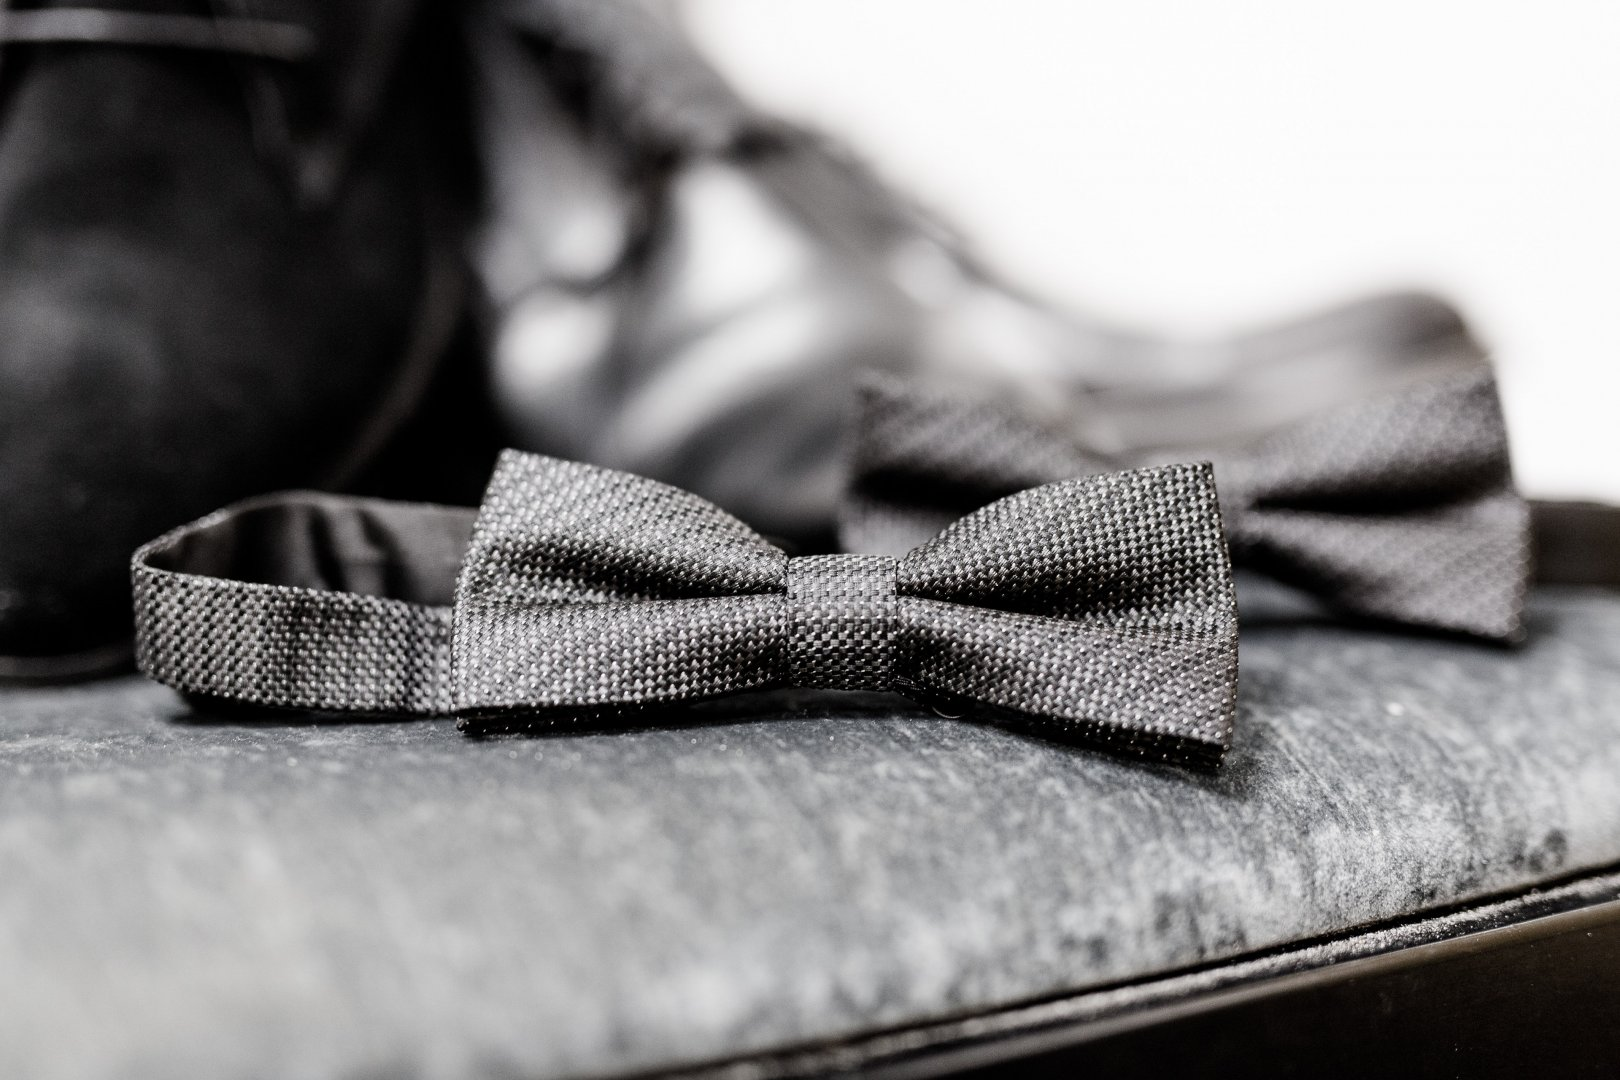 White Black Bow tie Tie Plaid Pattern Footwear Fashion accessory Black-and-white Design Photography Textile Tartan Shoe Formal wear Monochrome Still life photography Style